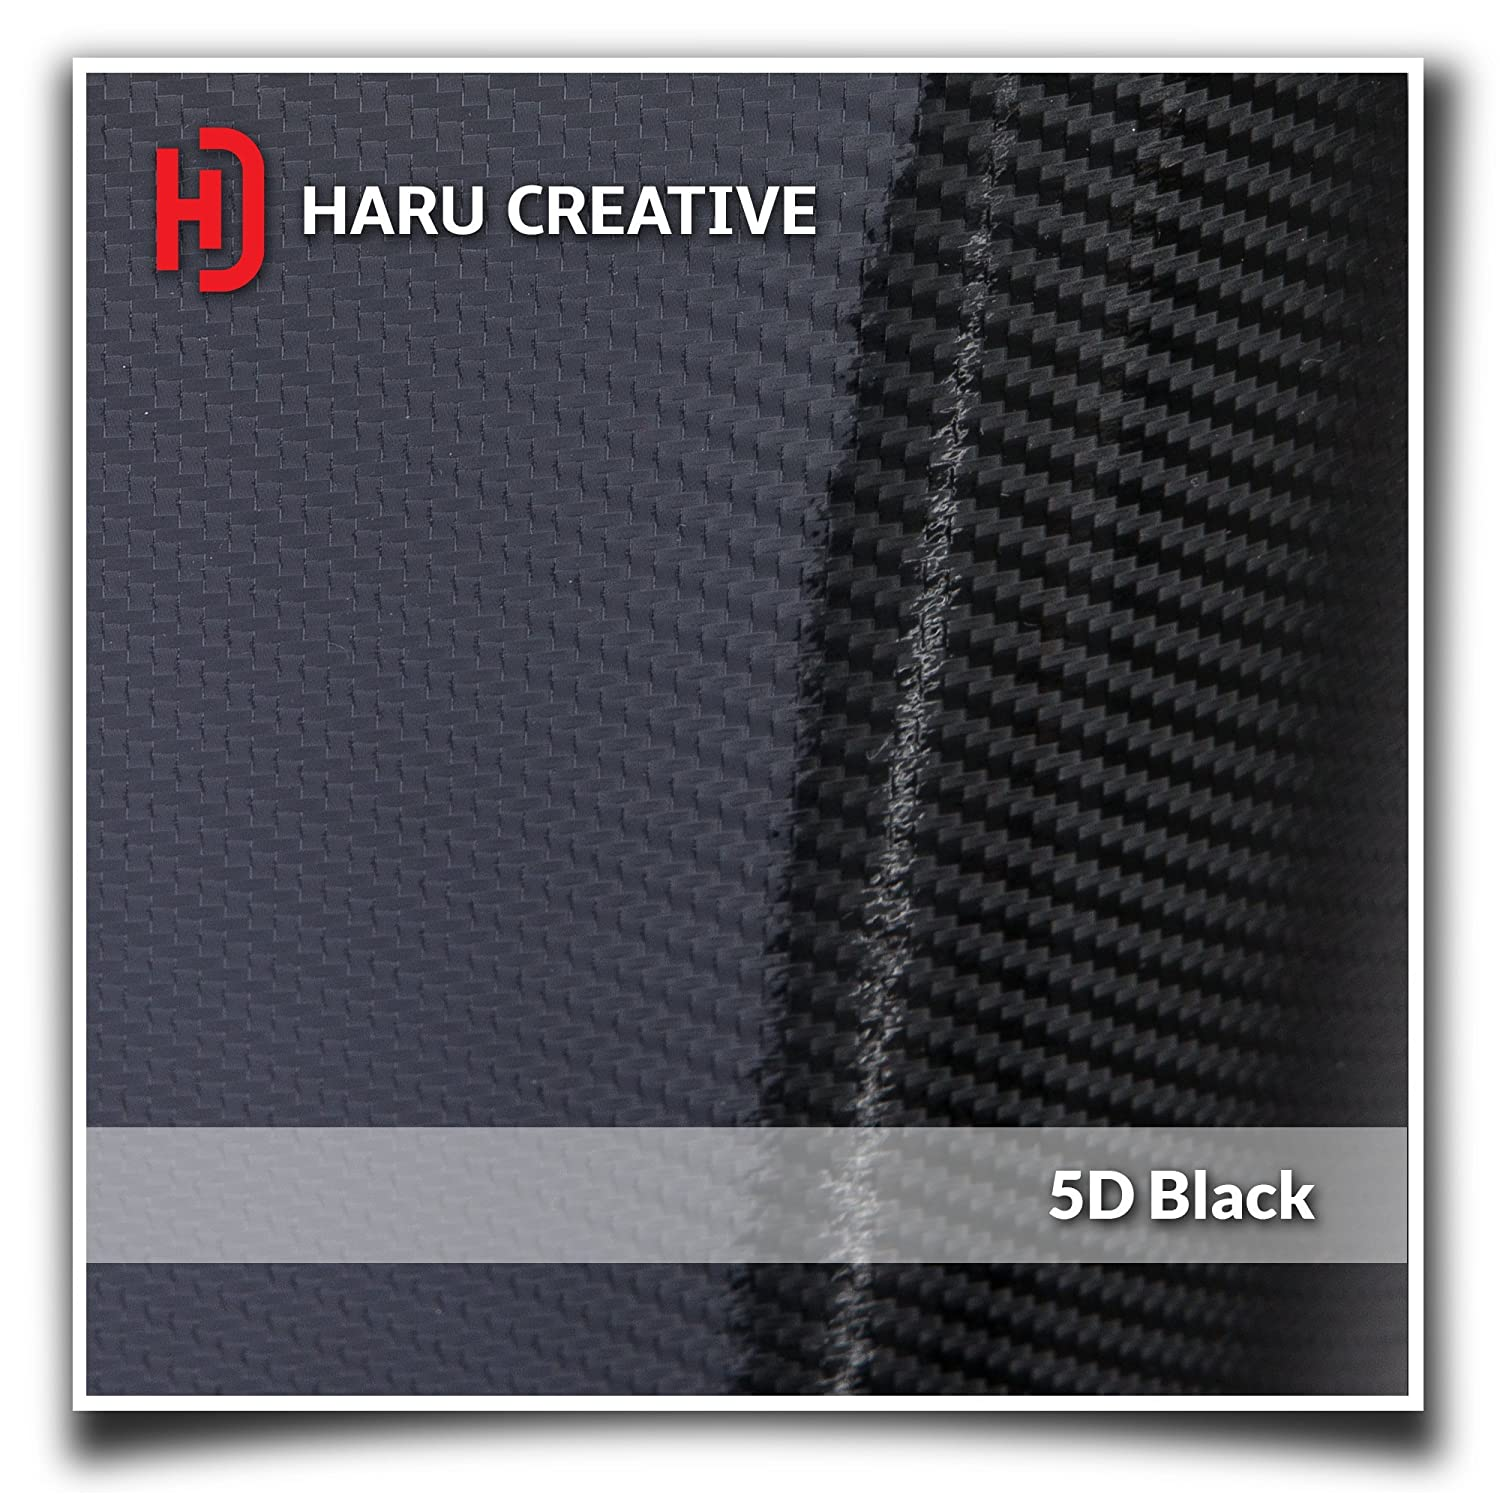 Front Grille Hood Rear Trunk Emblem Letter Insert Overlay Vinyl Decal Compatible with and Ford Focus ST 2013-2019 Haru Creative 5D Gloss Carbon Fiber Black